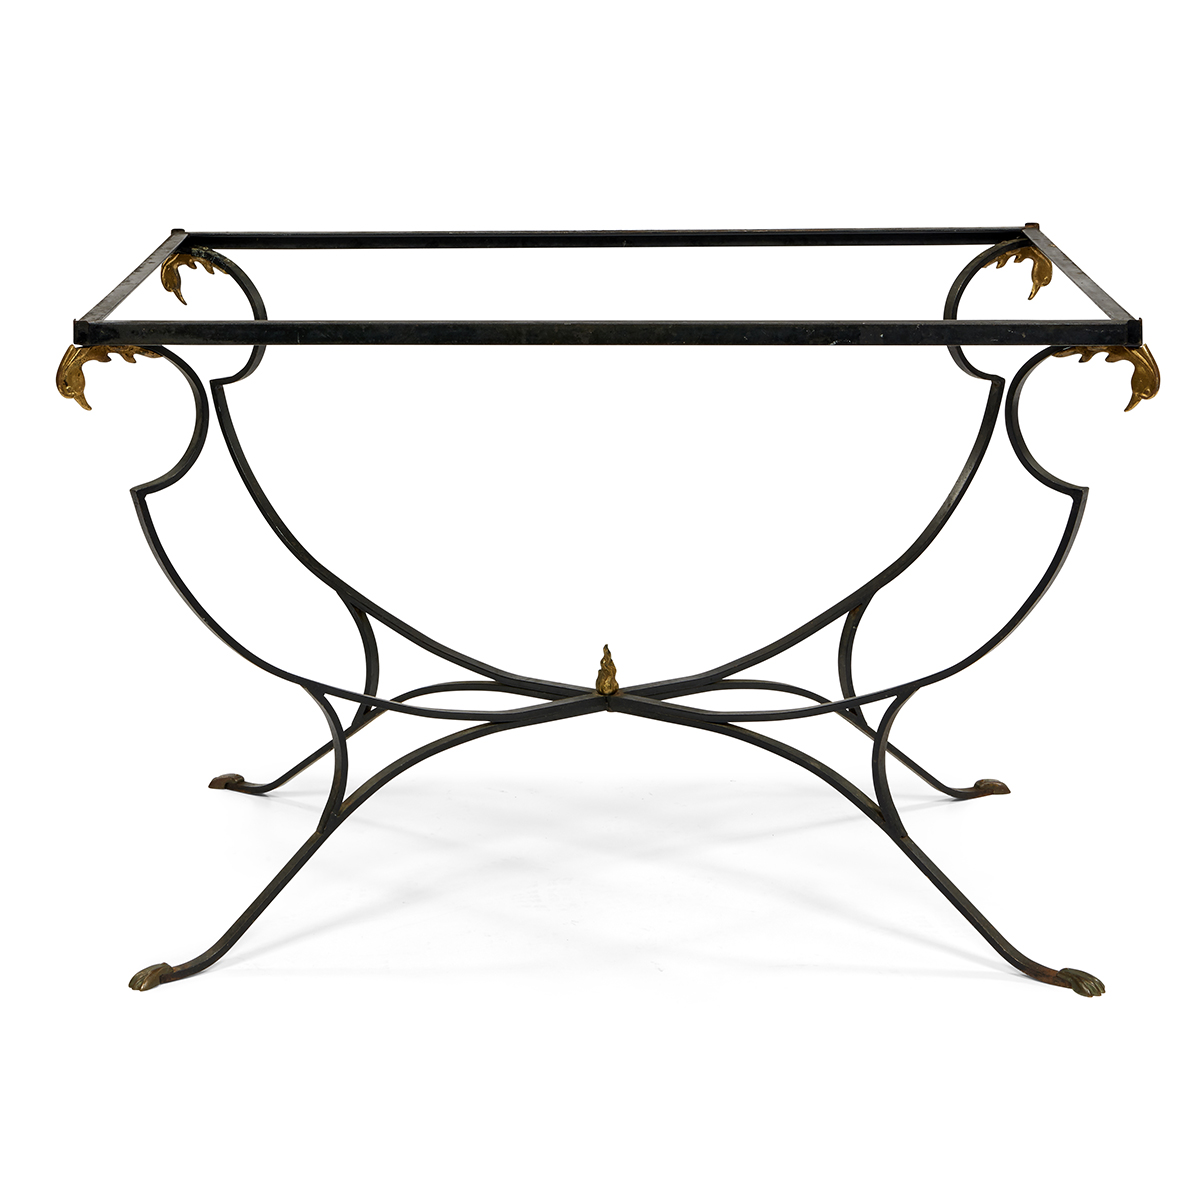 "Samuel Copelon (1904-1991) Neoclassical garden table and six chairs table: 50""w x 33""d x 31""h, side chairs: 15""w x 20""d x 36 1/4""h,..."